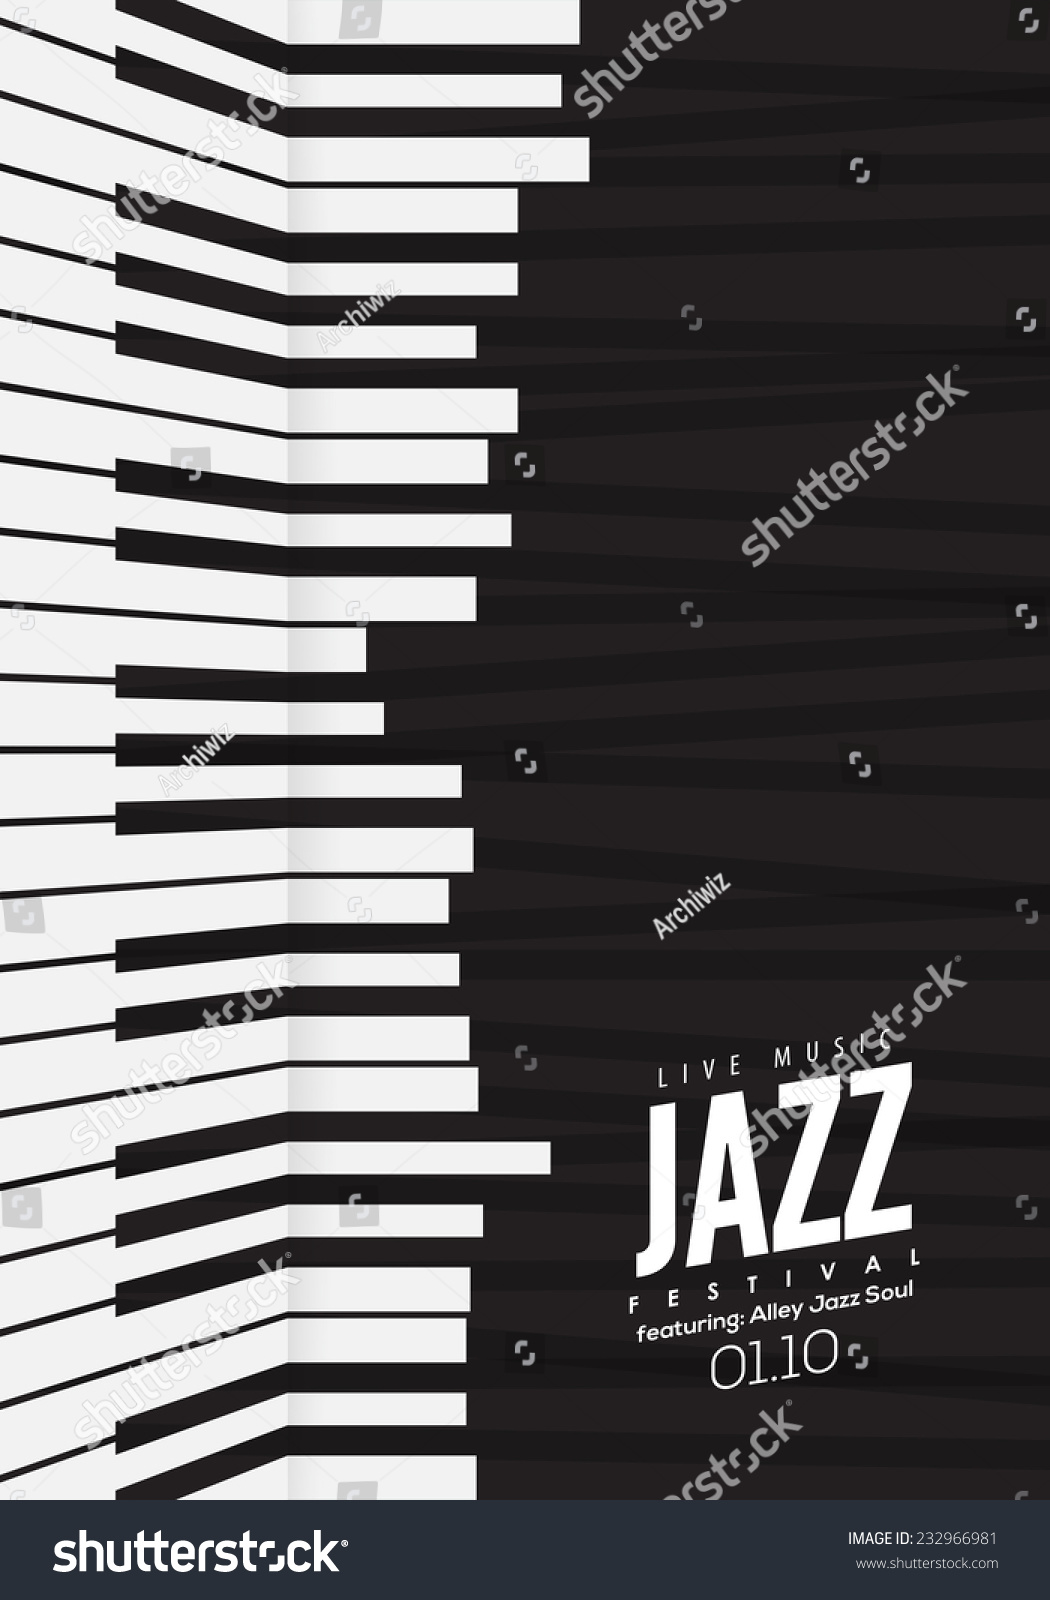 jazz music poster background template piano stock vector 232966981 shutterstock. Black Bedroom Furniture Sets. Home Design Ideas